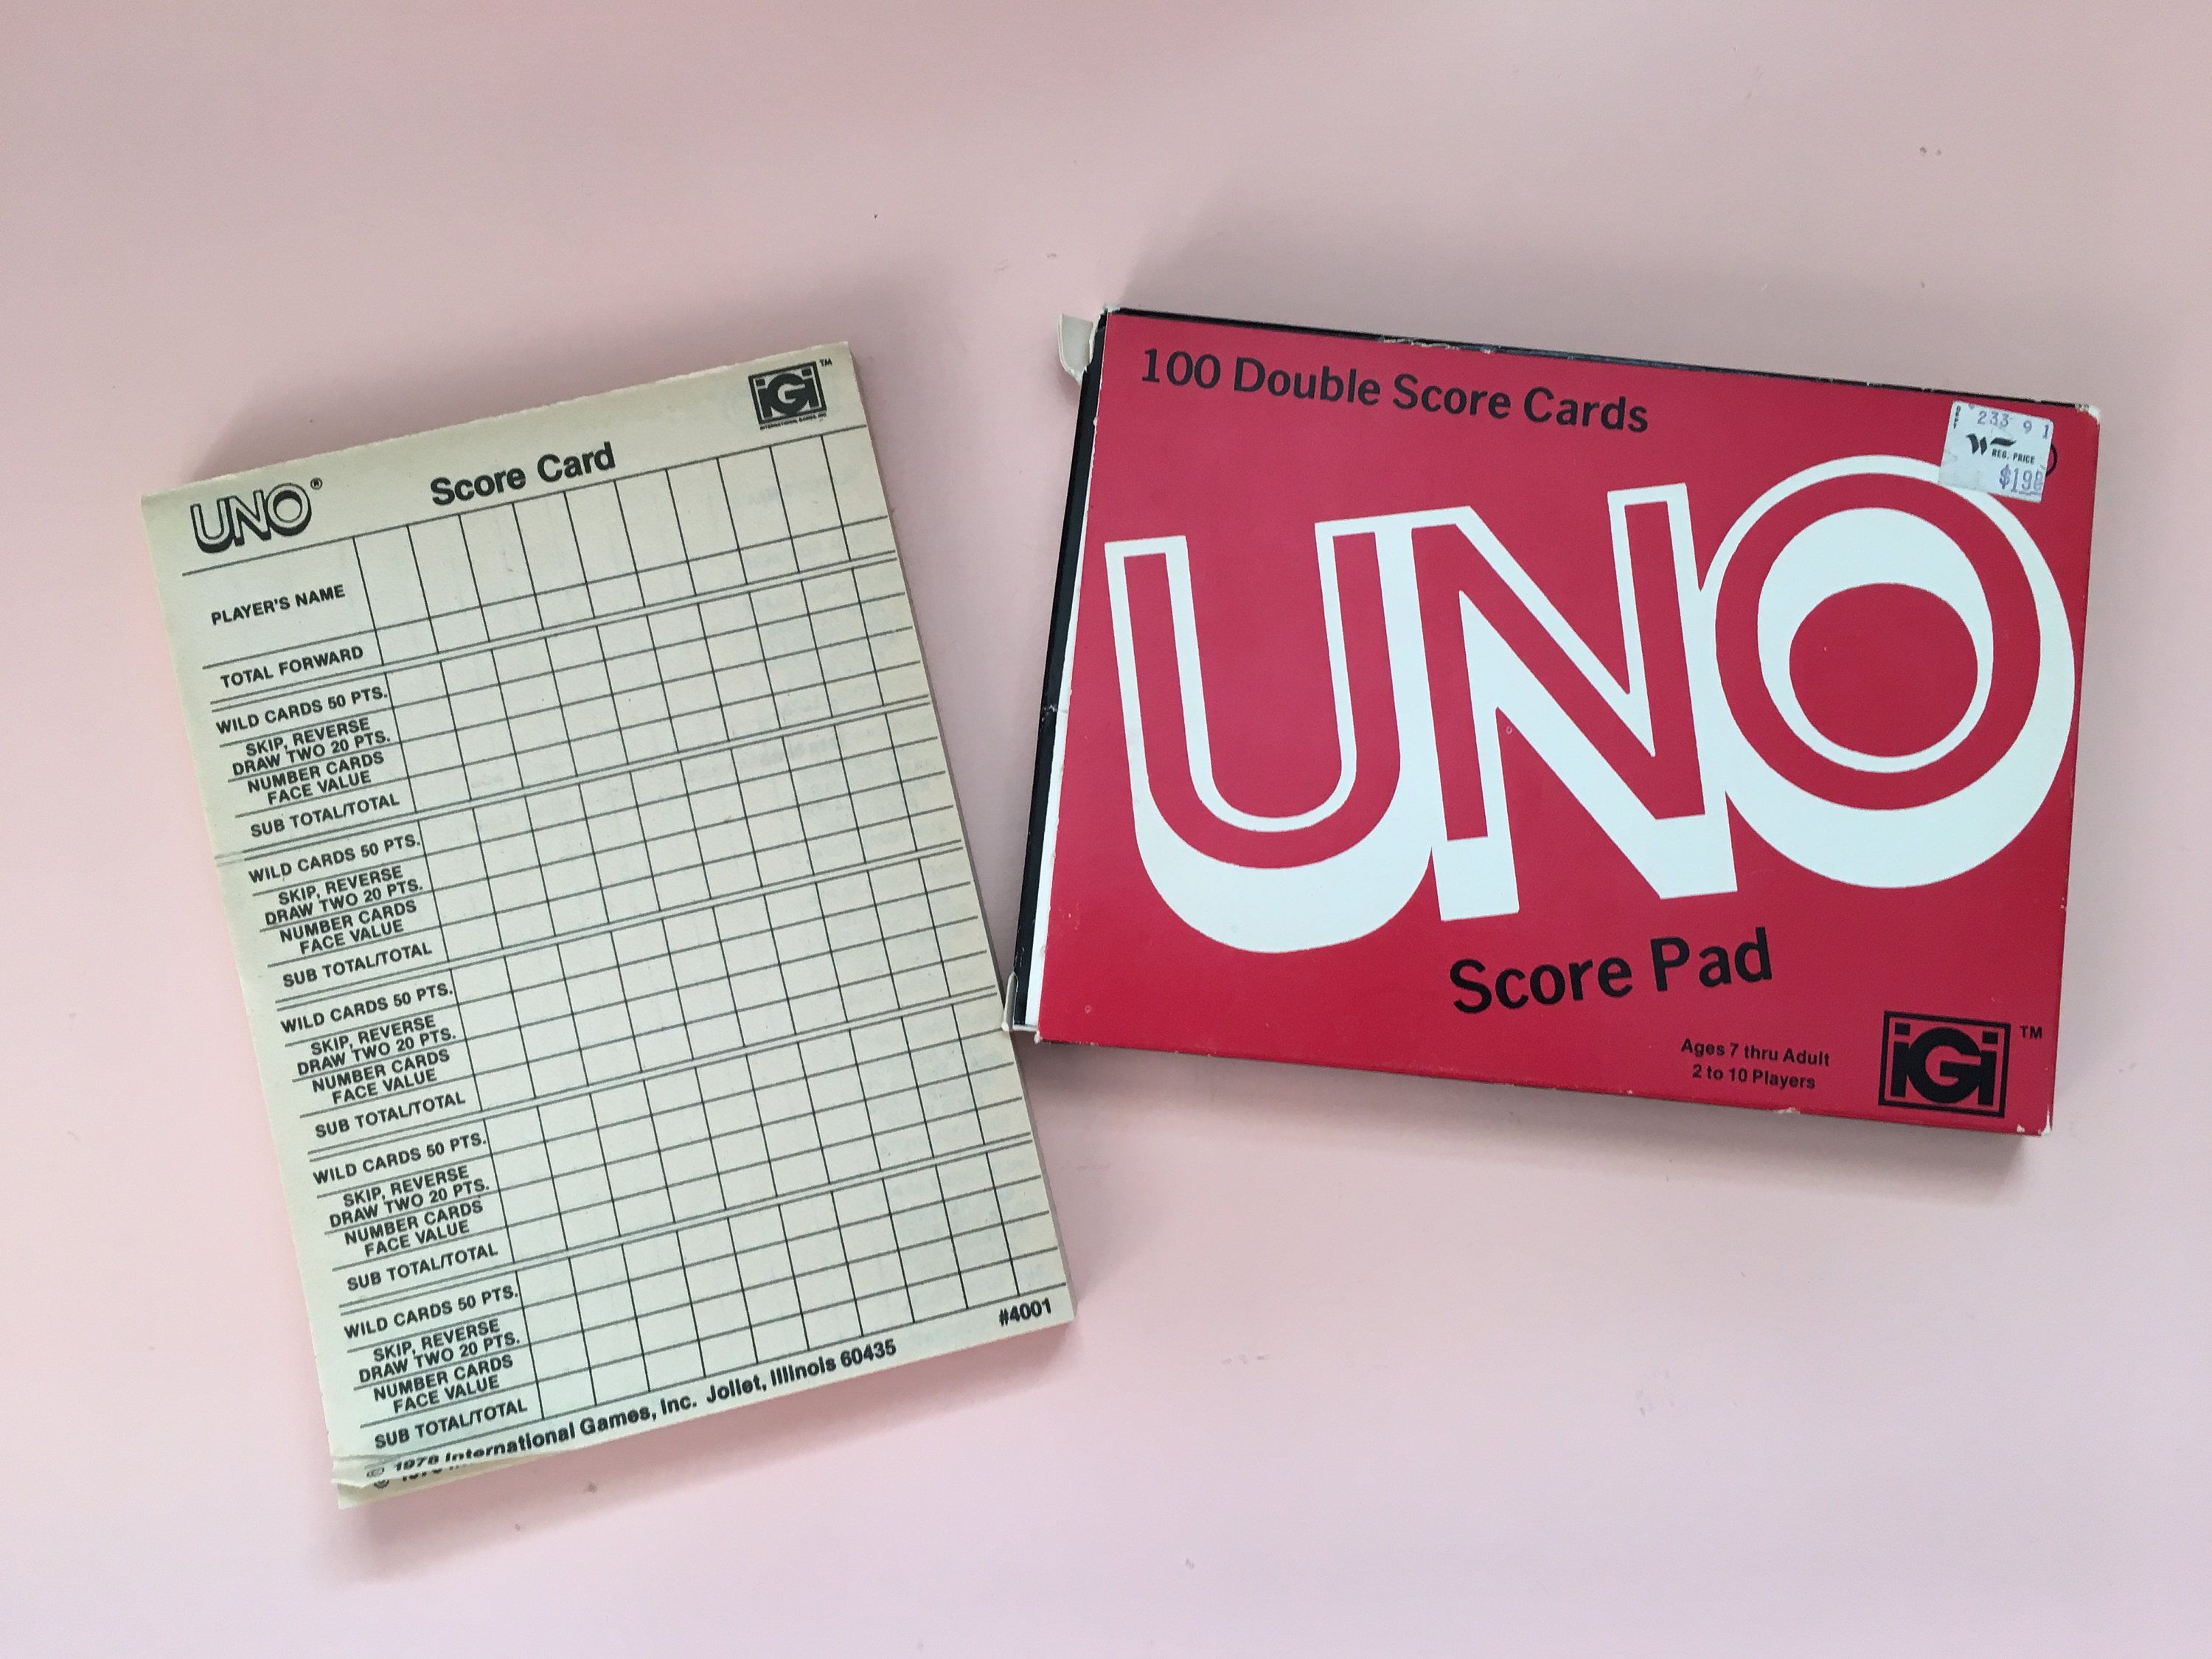 uno attack cards not coming out